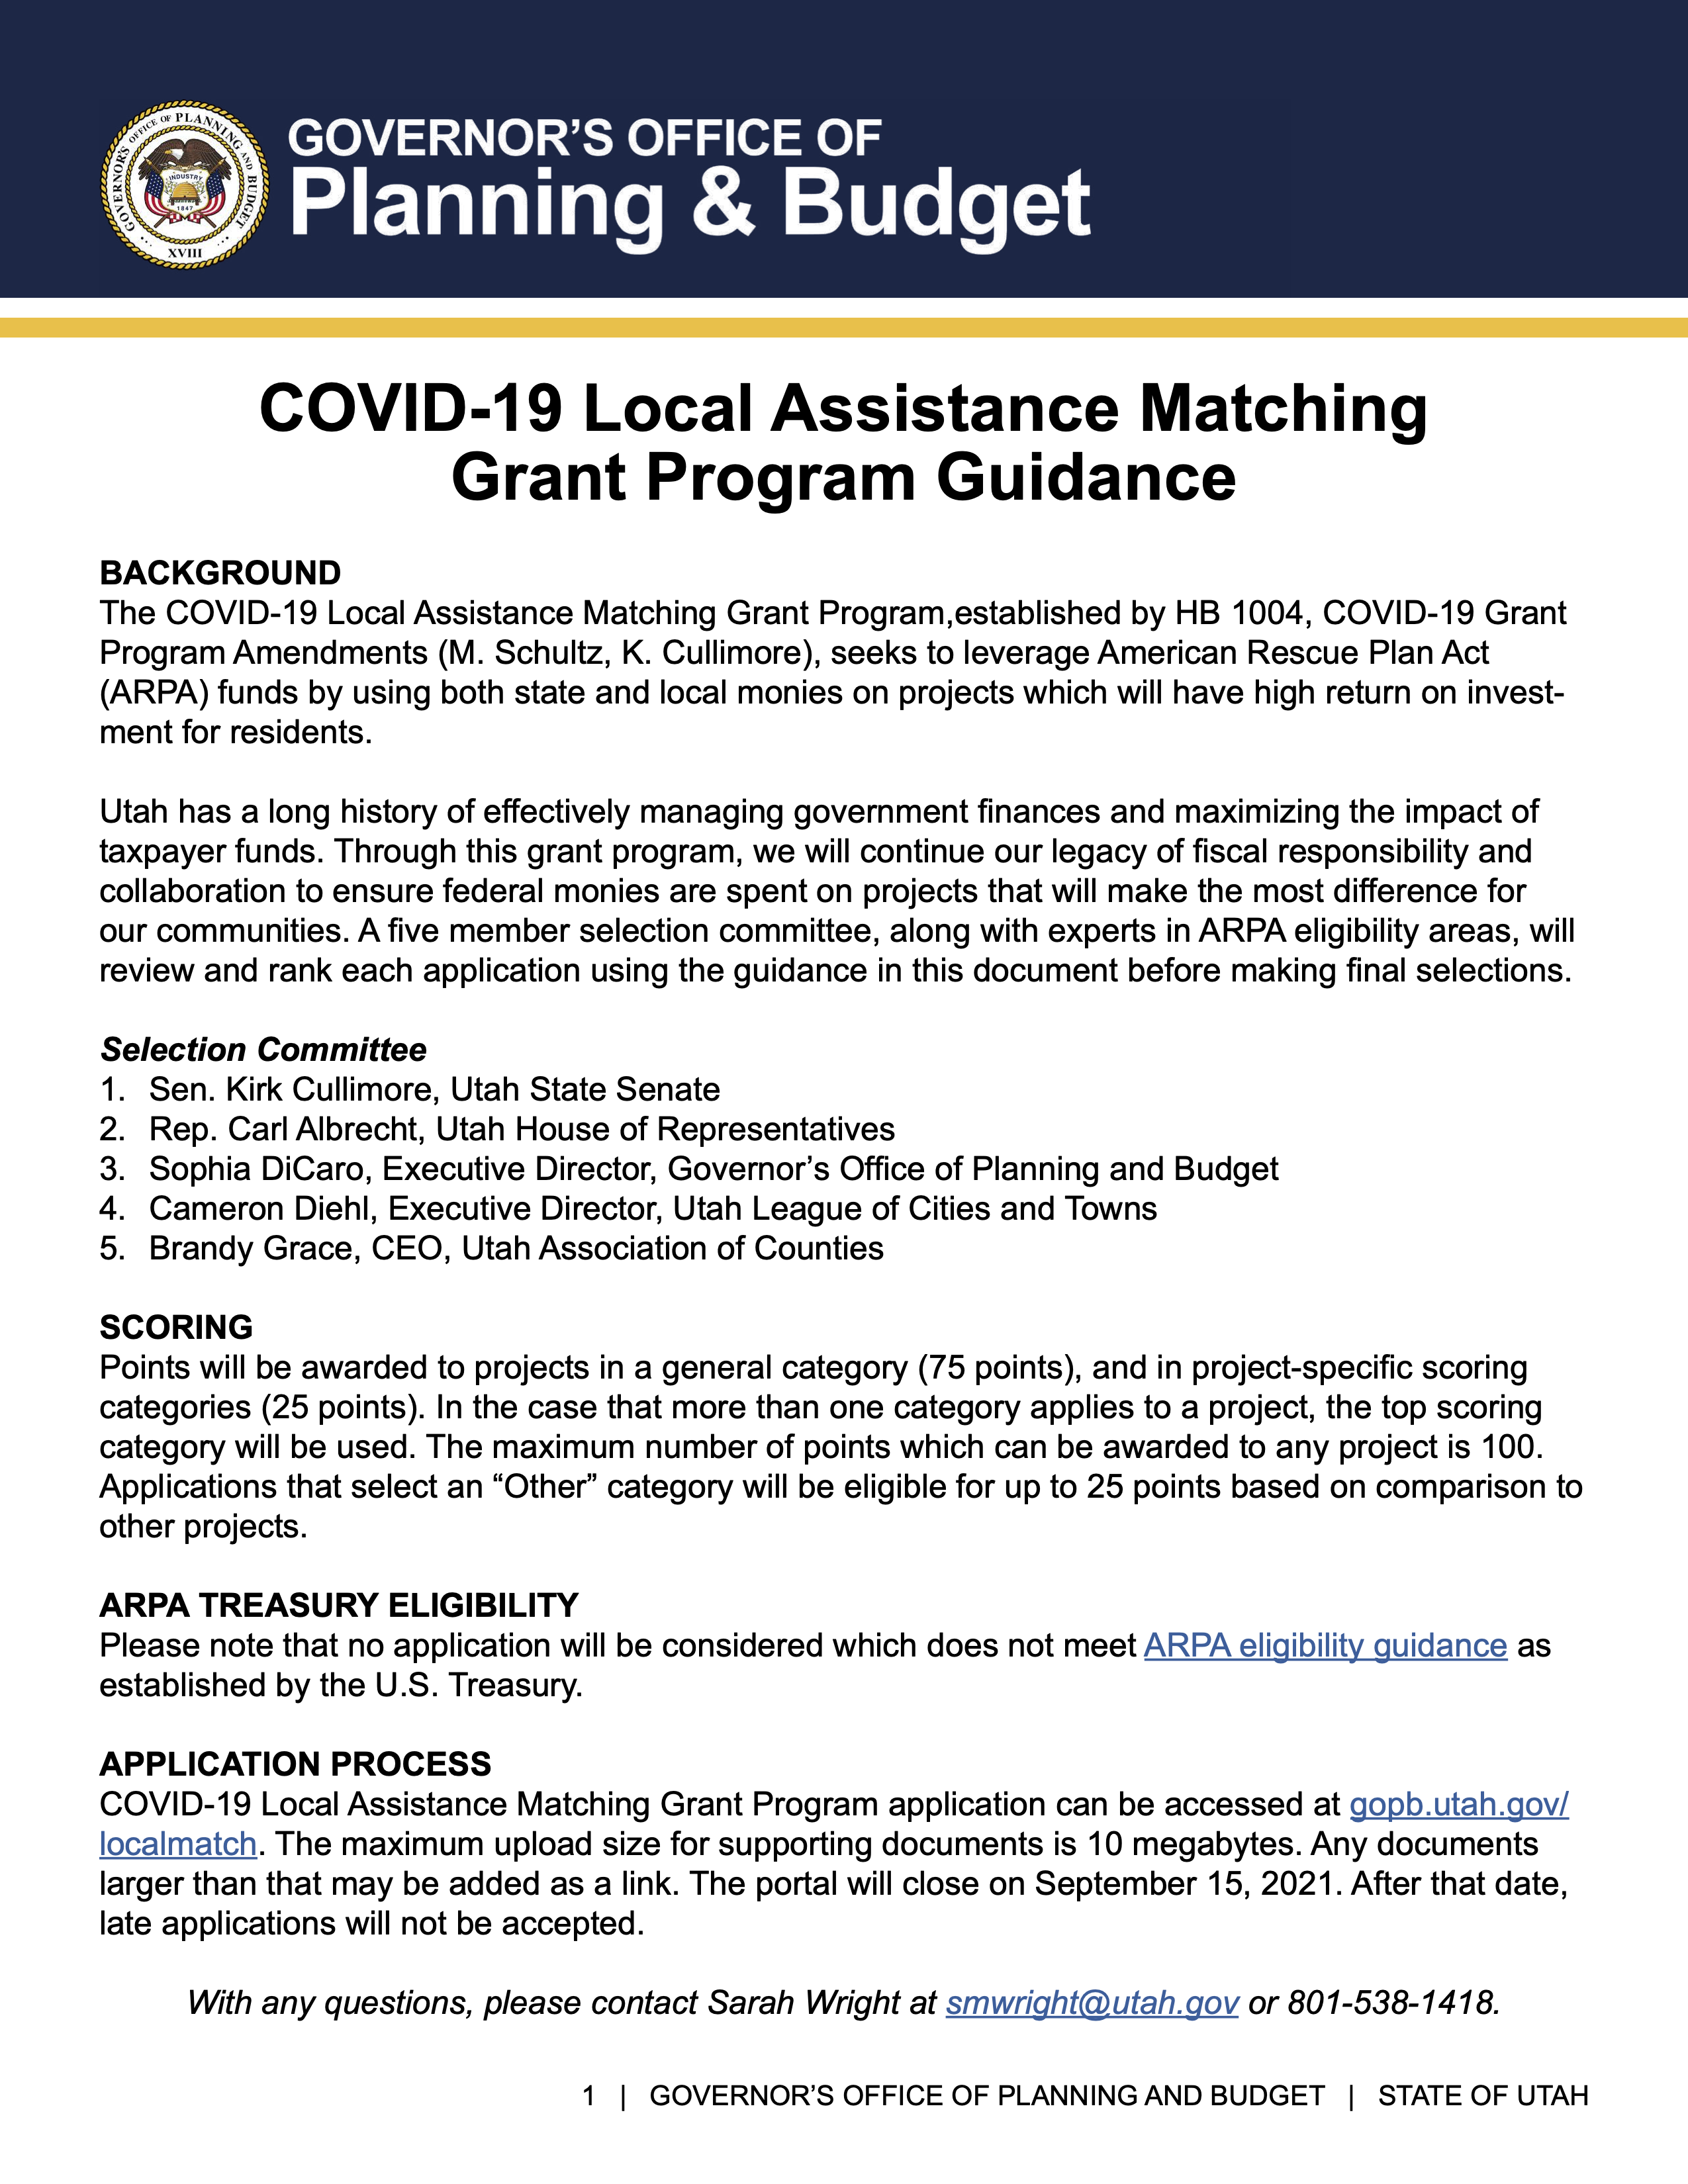 Link to COVID-19 Local Assistance Matching Grant Program Guidance